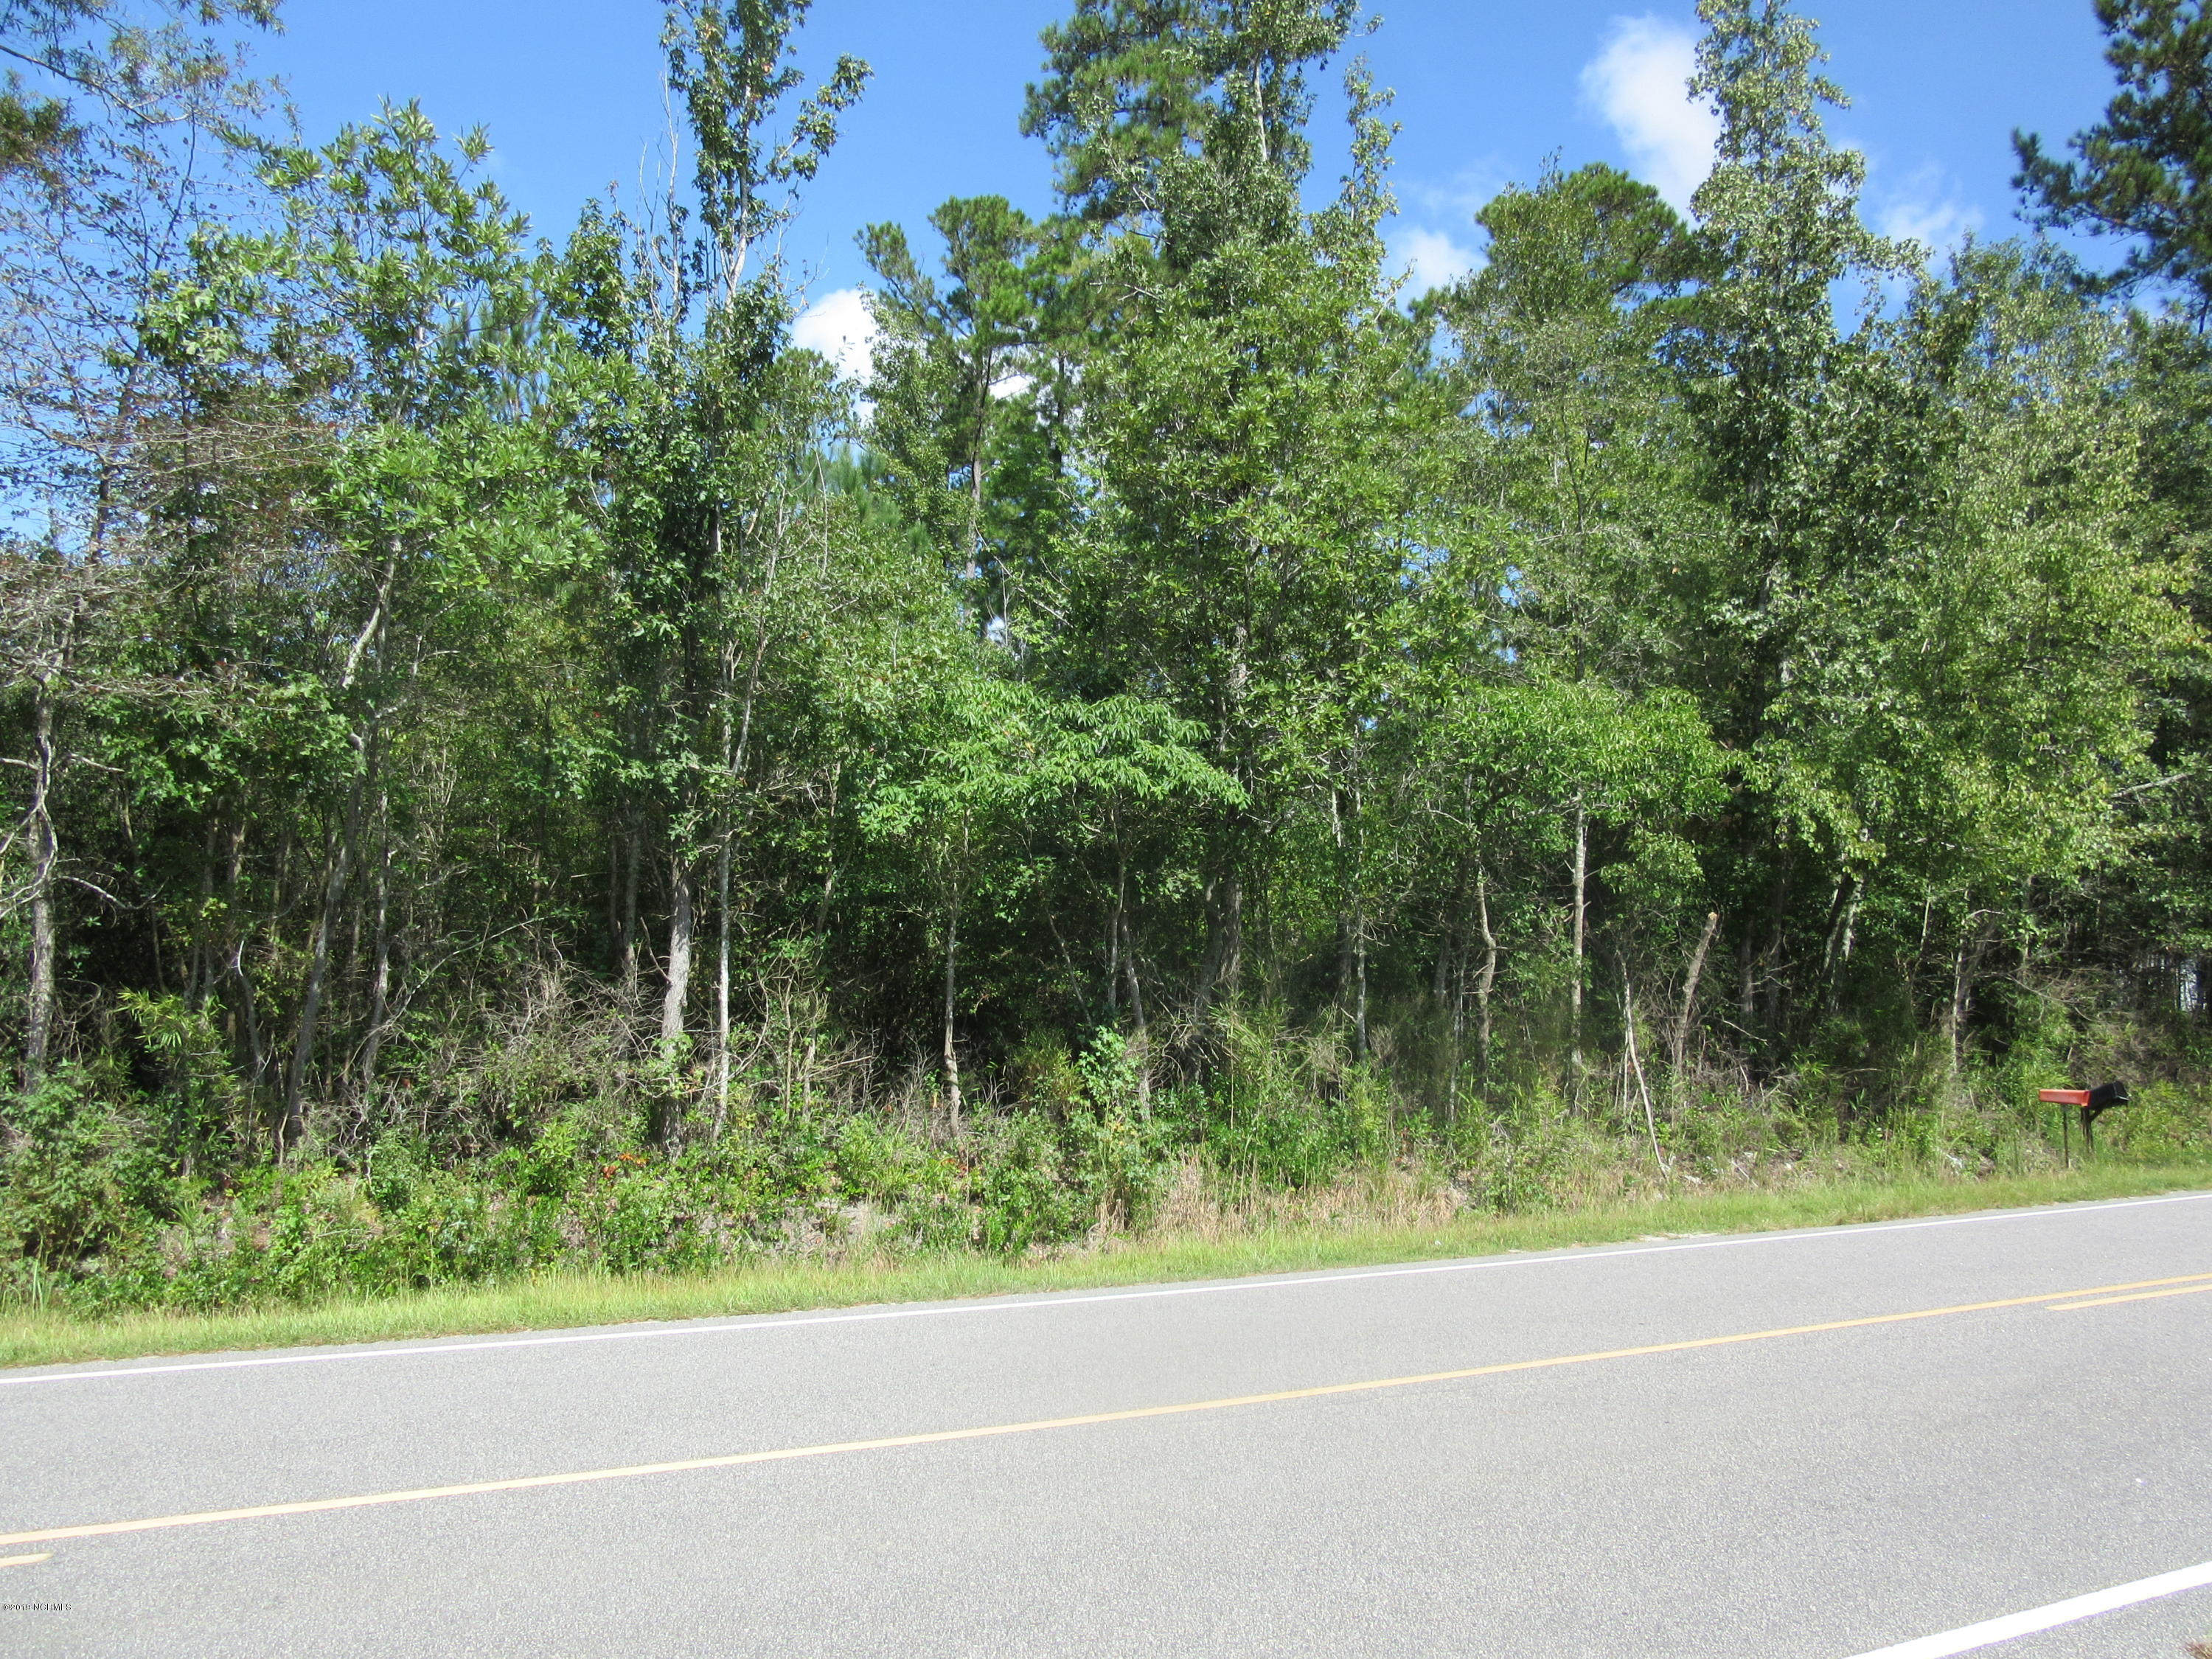 0 Briarcliff Road, Lumberton, North Carolina 28358, ,Undeveloped,For sale,Briarcliff,100184407